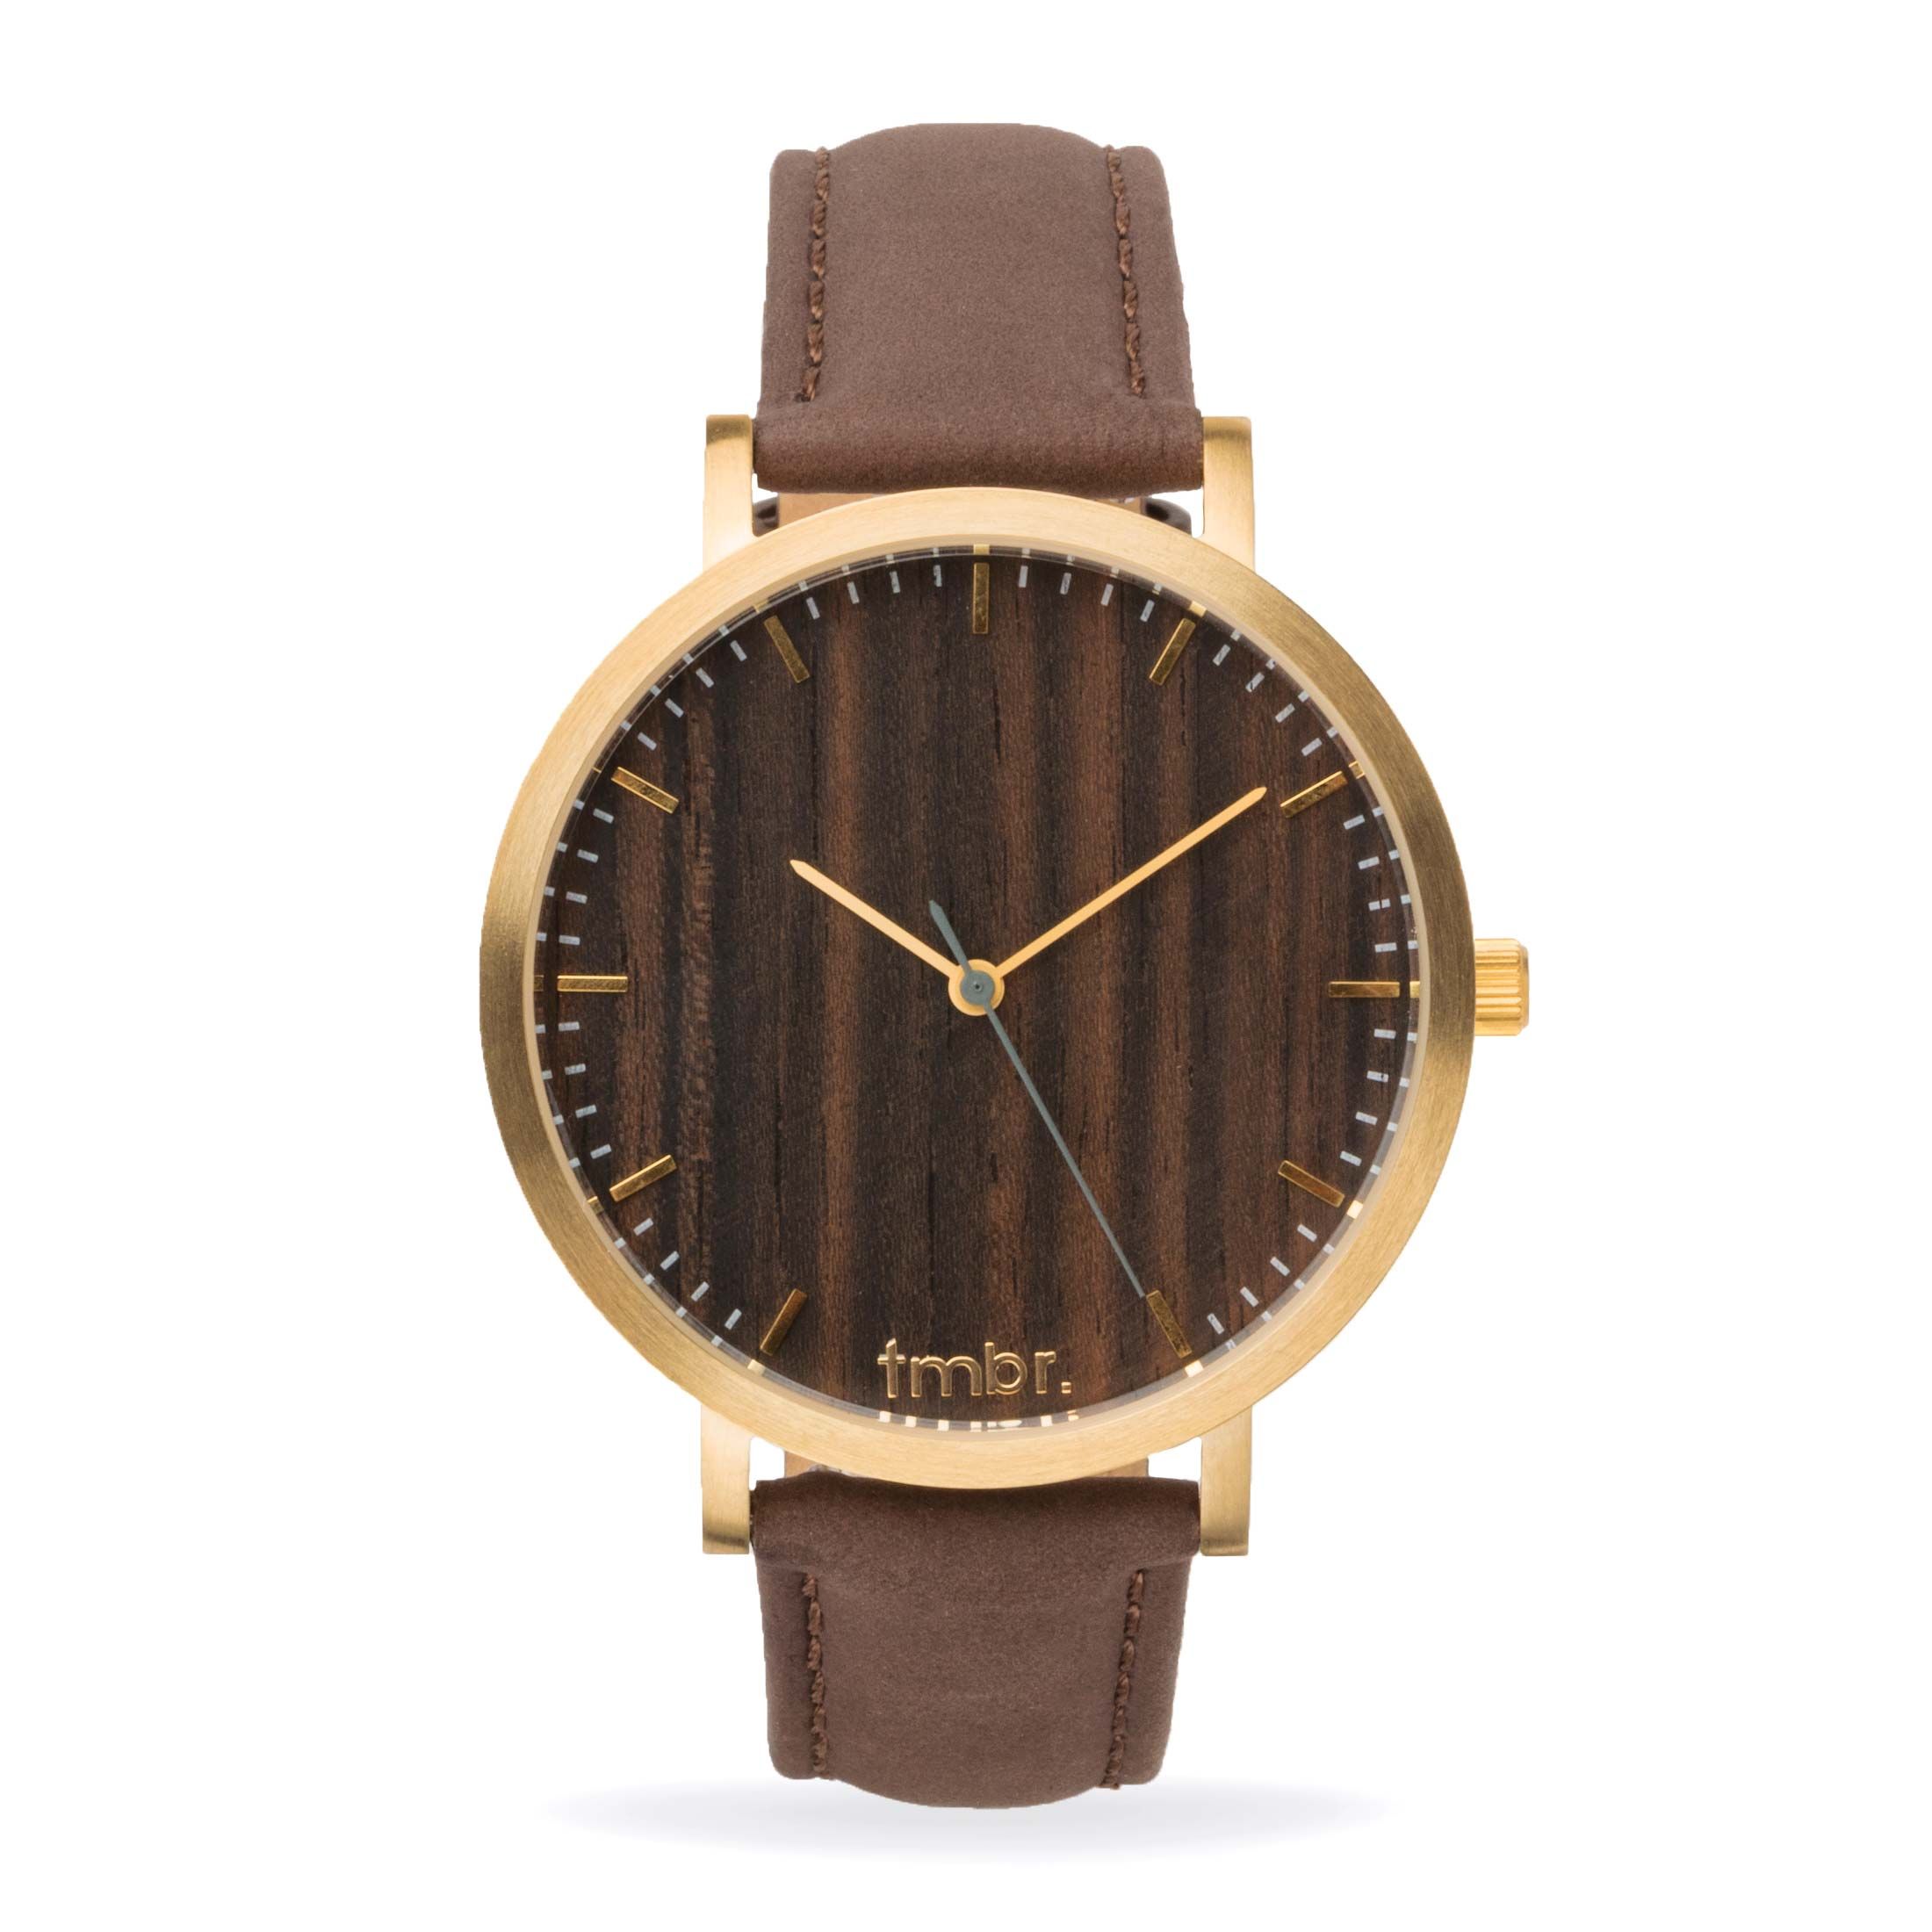 Tmbr Helm Minimalist Wooden Personalized Watch Walnut Gold